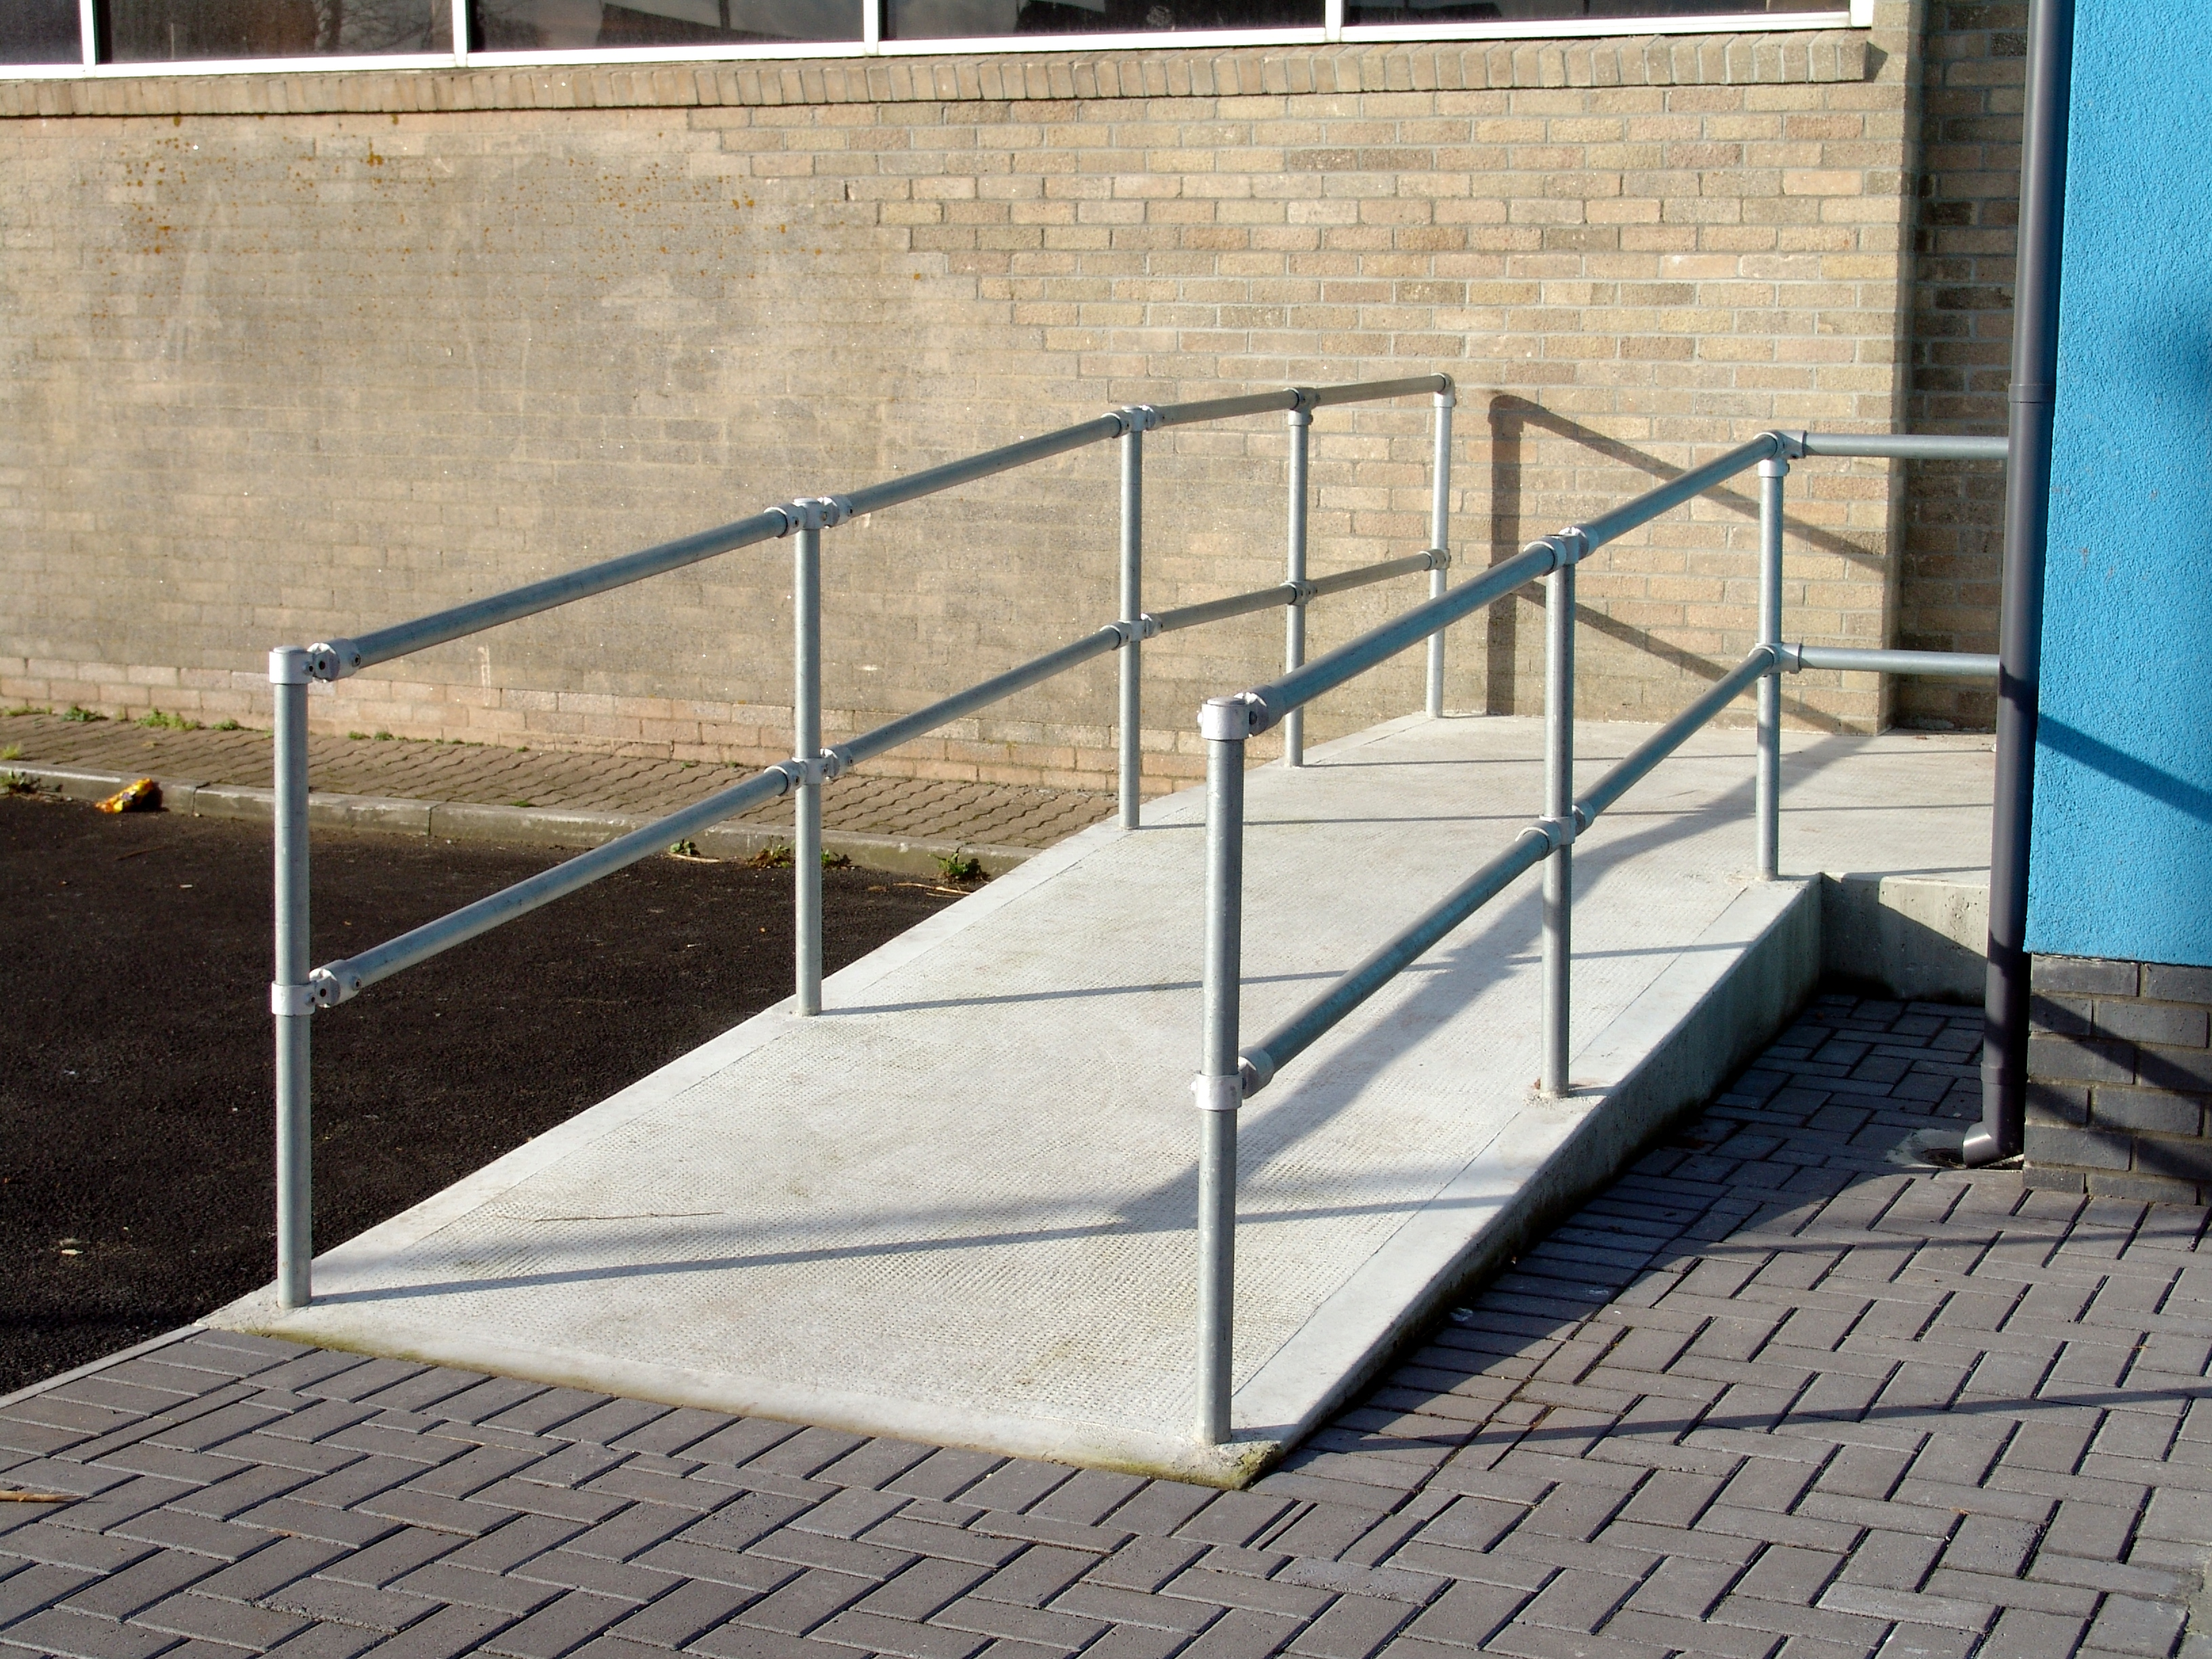 Design Hand Rail handrail kits themetalstore low cost for ramps